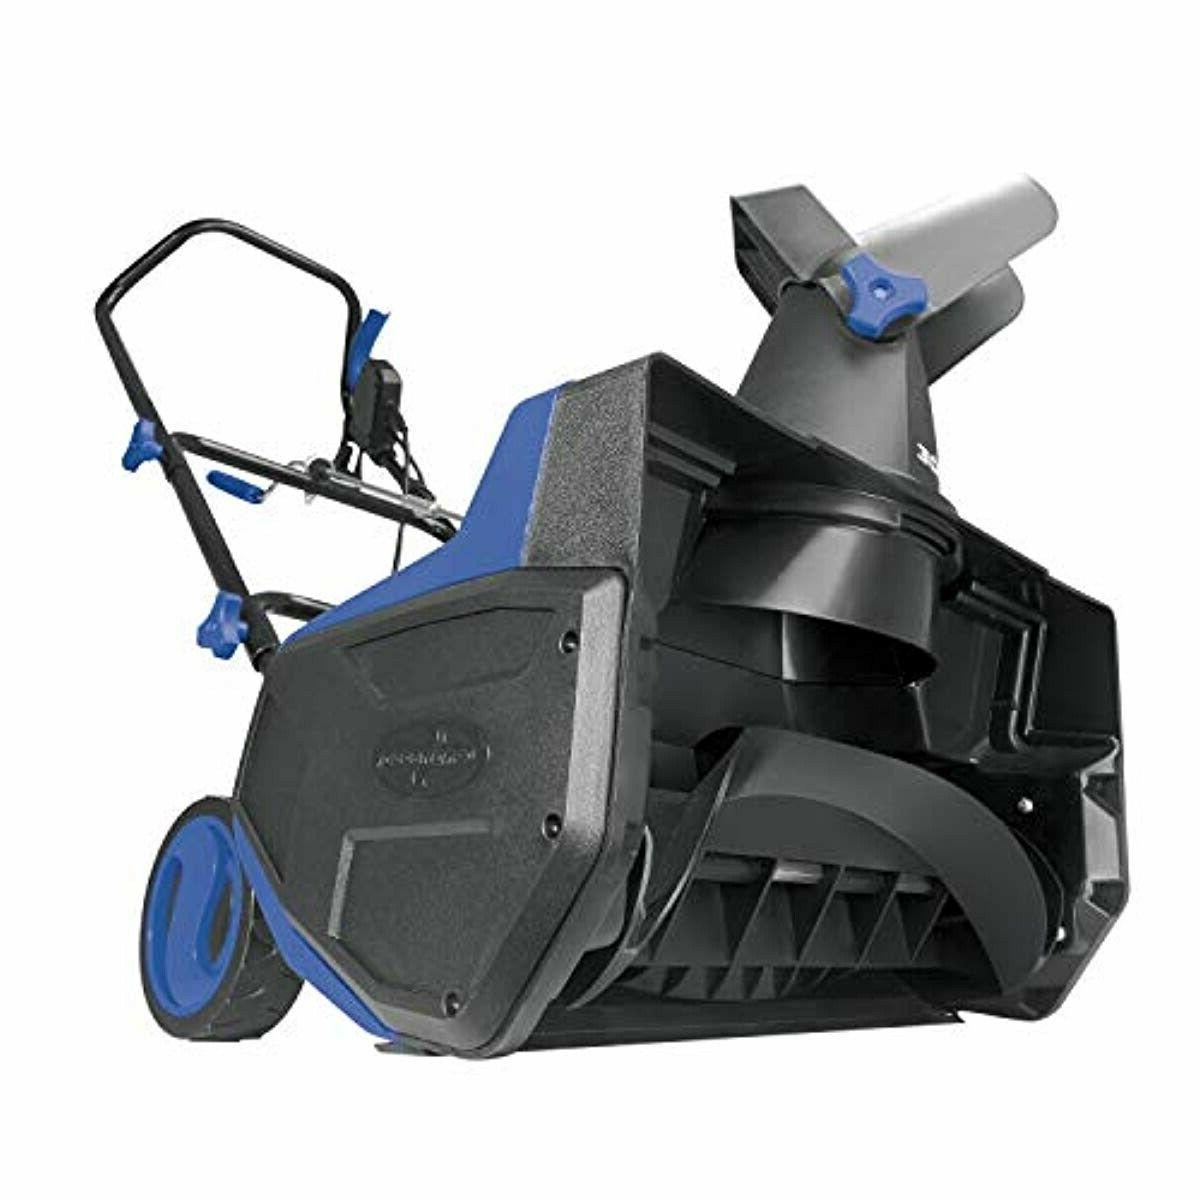 18-Inch Electric Snow Thrower